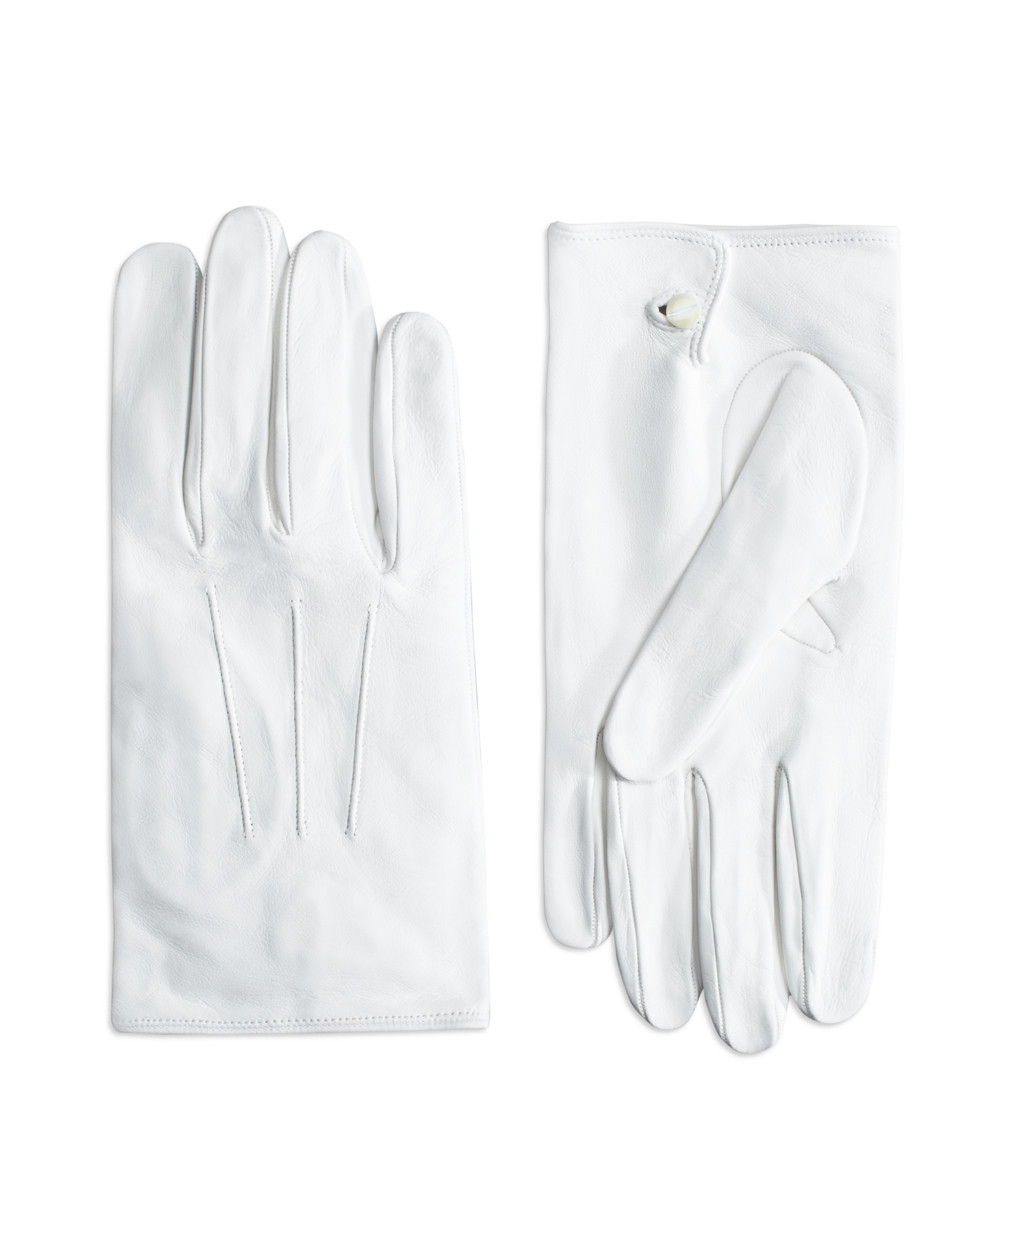 Edwardian Titanic Mens Formal Suit Guide Mens White Formal Gloves $148.00 AT vintagedancer.com